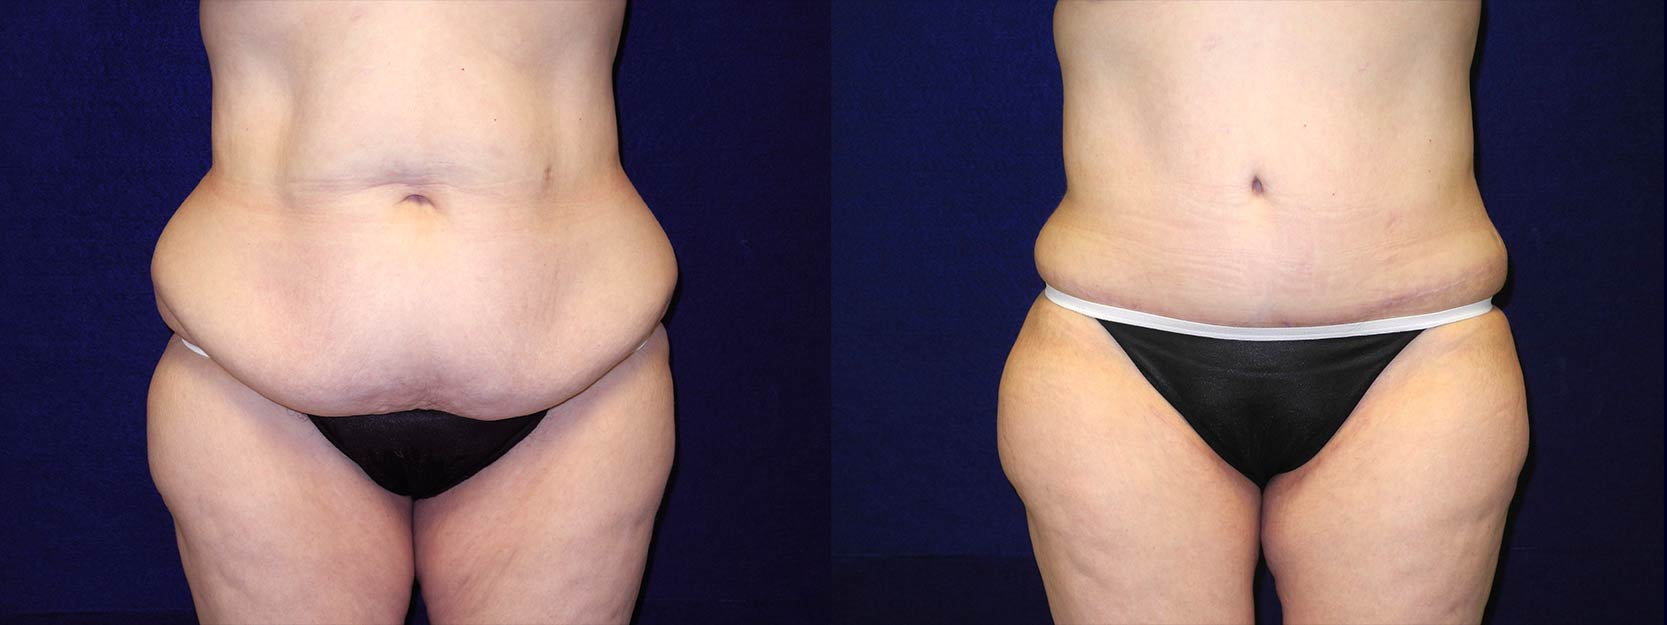 Frontal View - Circumferential Tummy Tuck